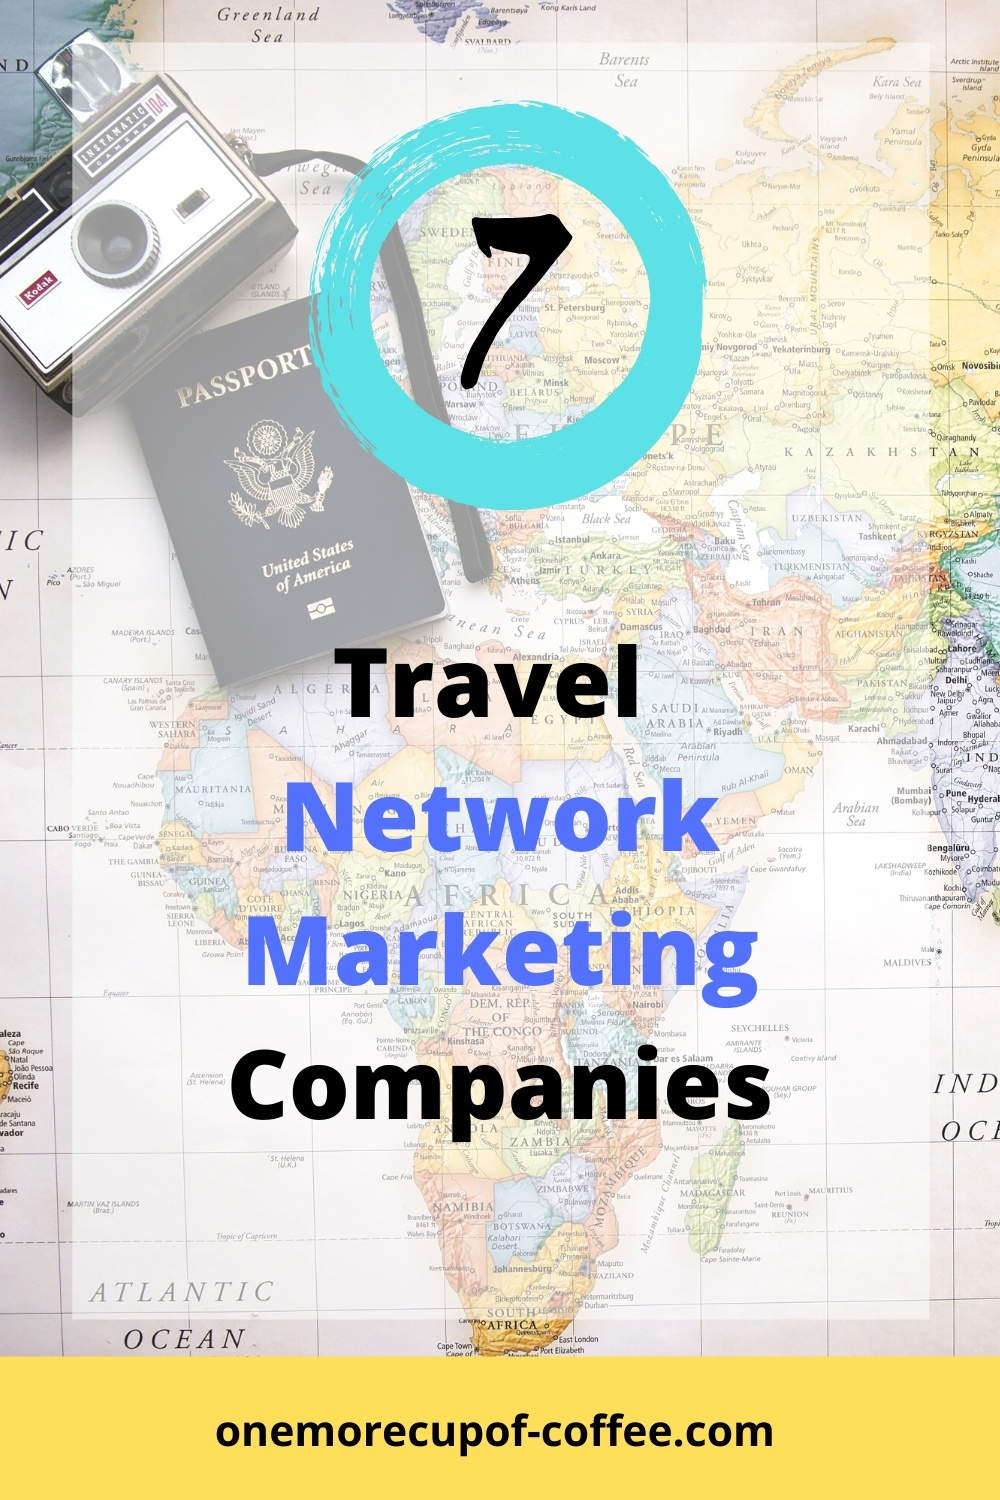 Passport and Map to represent travel network marketing companies